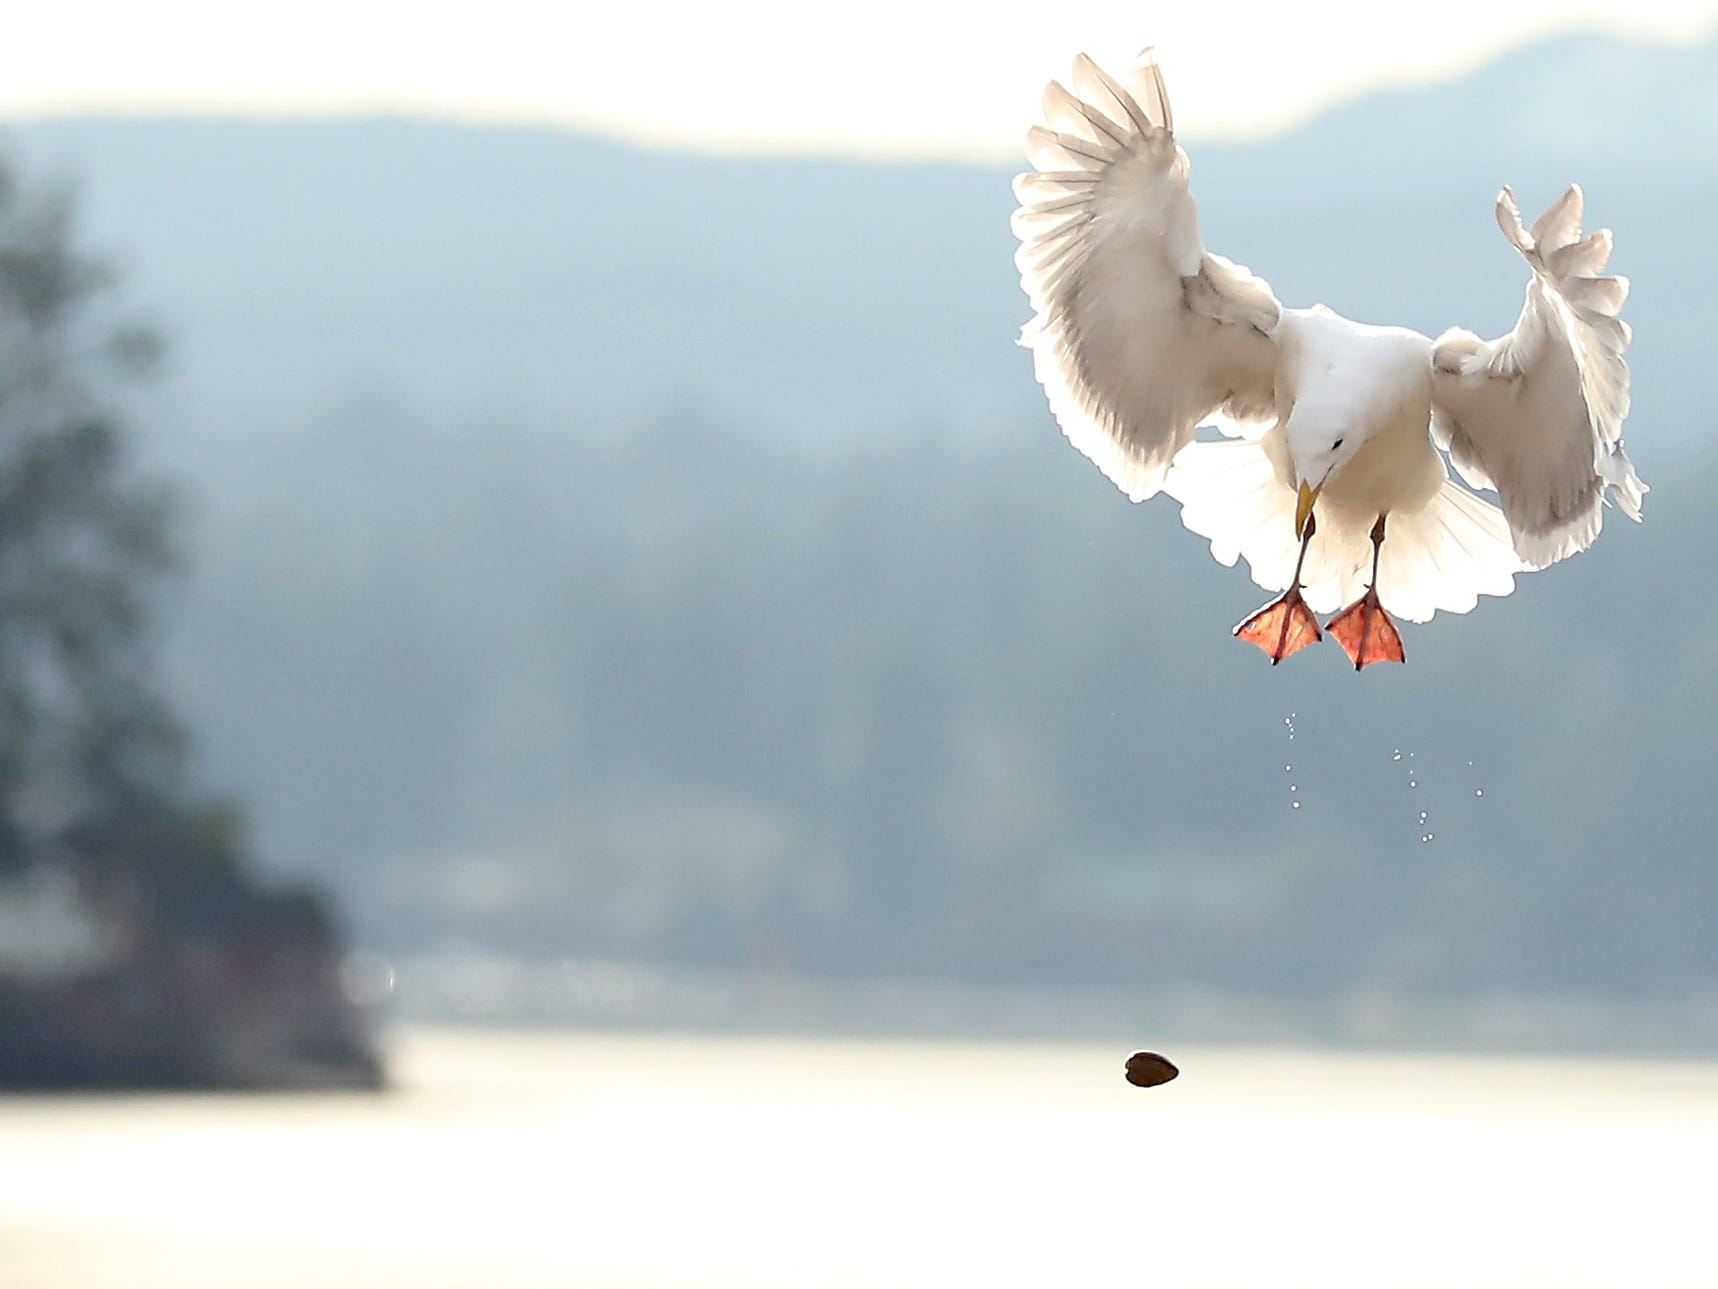 A gull drops a muscle to the pavement below with hopes of cracking it open at the Tracyton Boat Launch on Thursday, February 7, 2019.